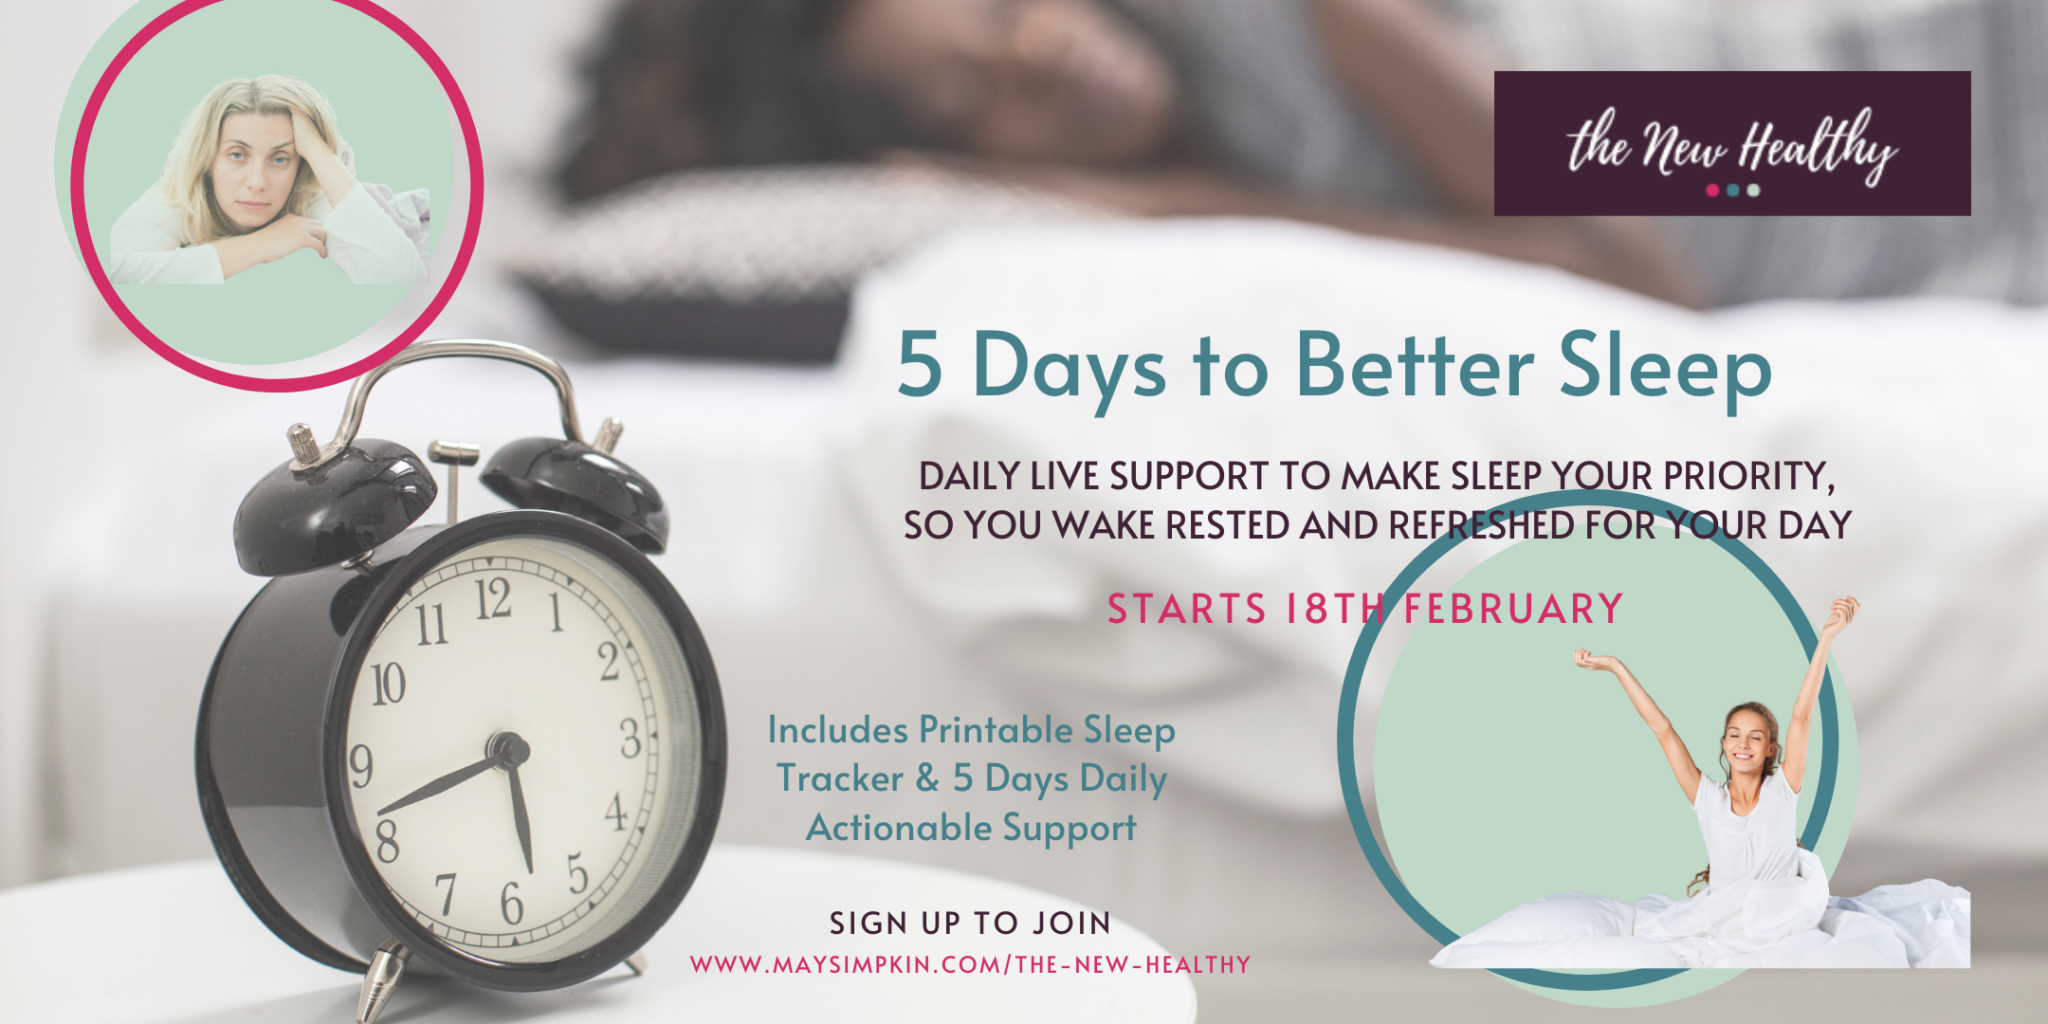 The New Healthy 5 Days to Better Sleep Challenge with May Simpkin